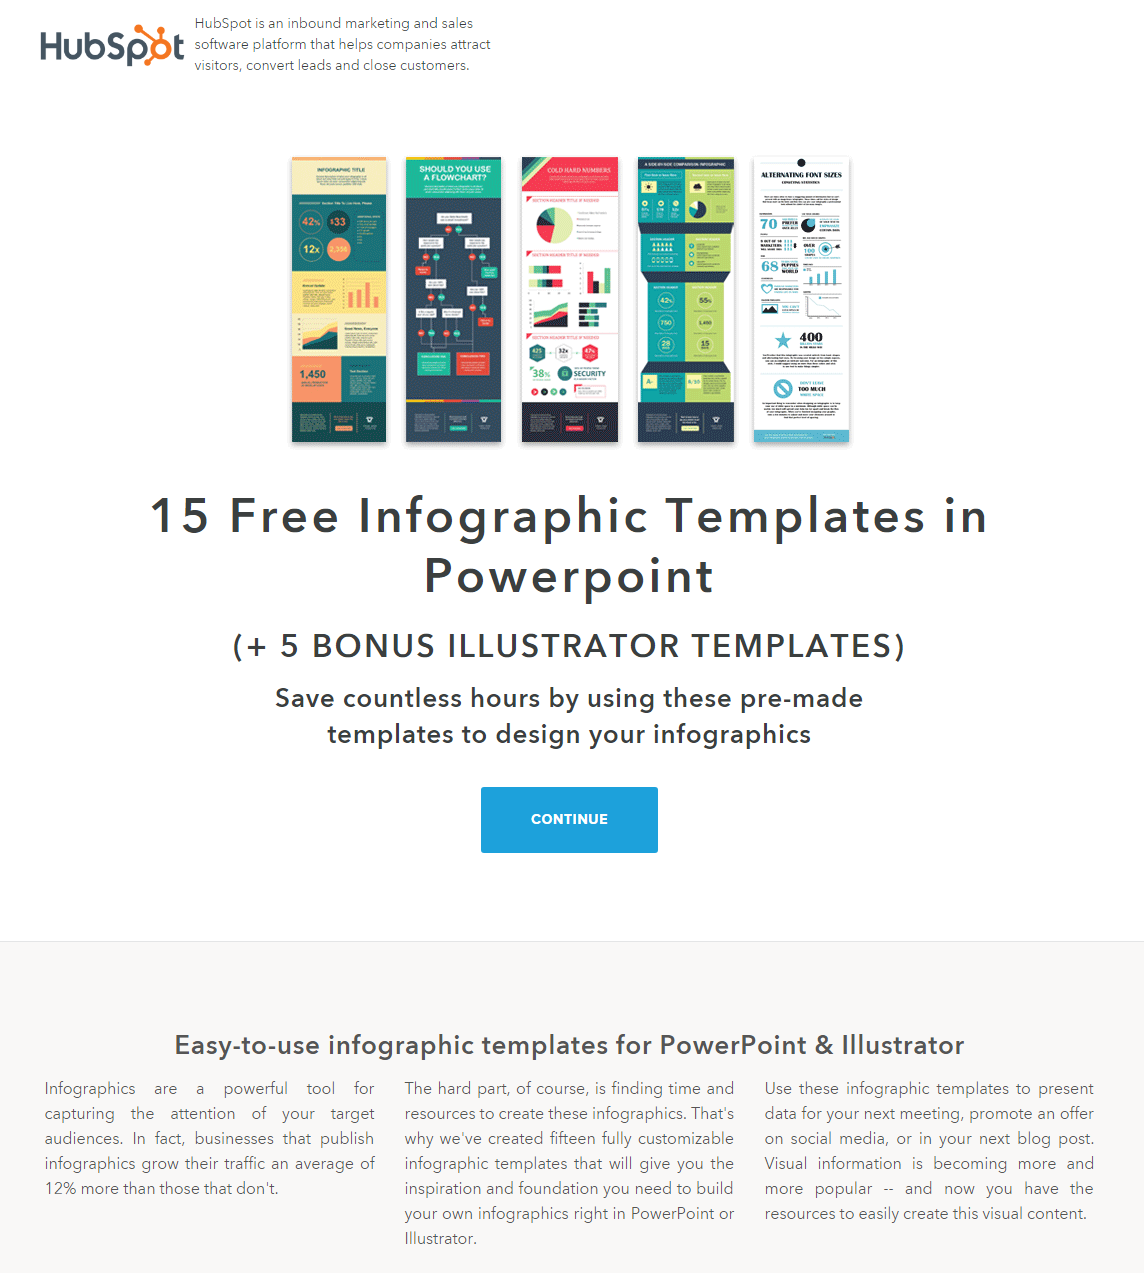 Free templates for Lead Generation